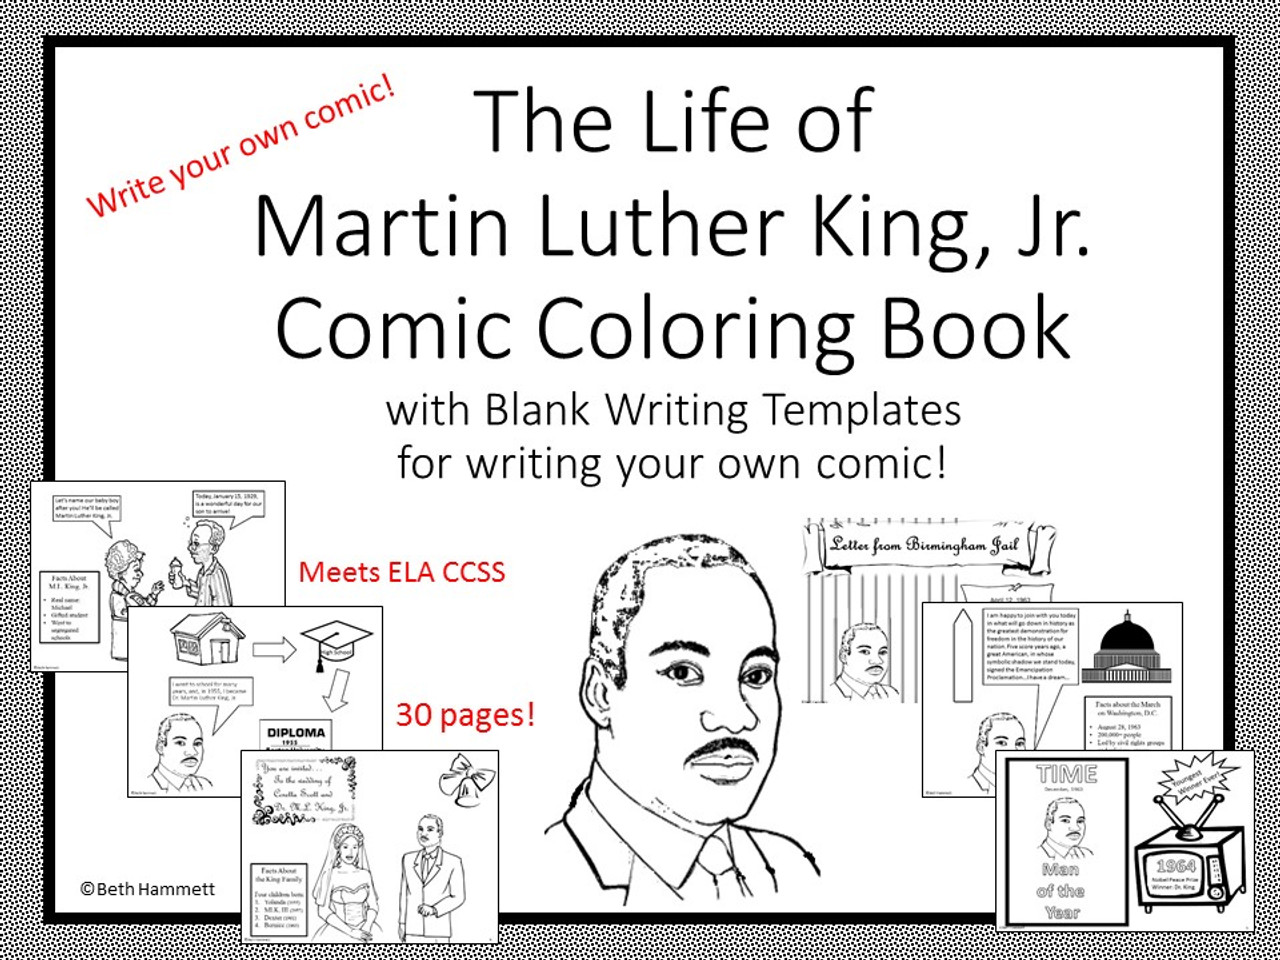 - Martin Luther King, Jr. Comic Coloring Book - Amped Up Learning